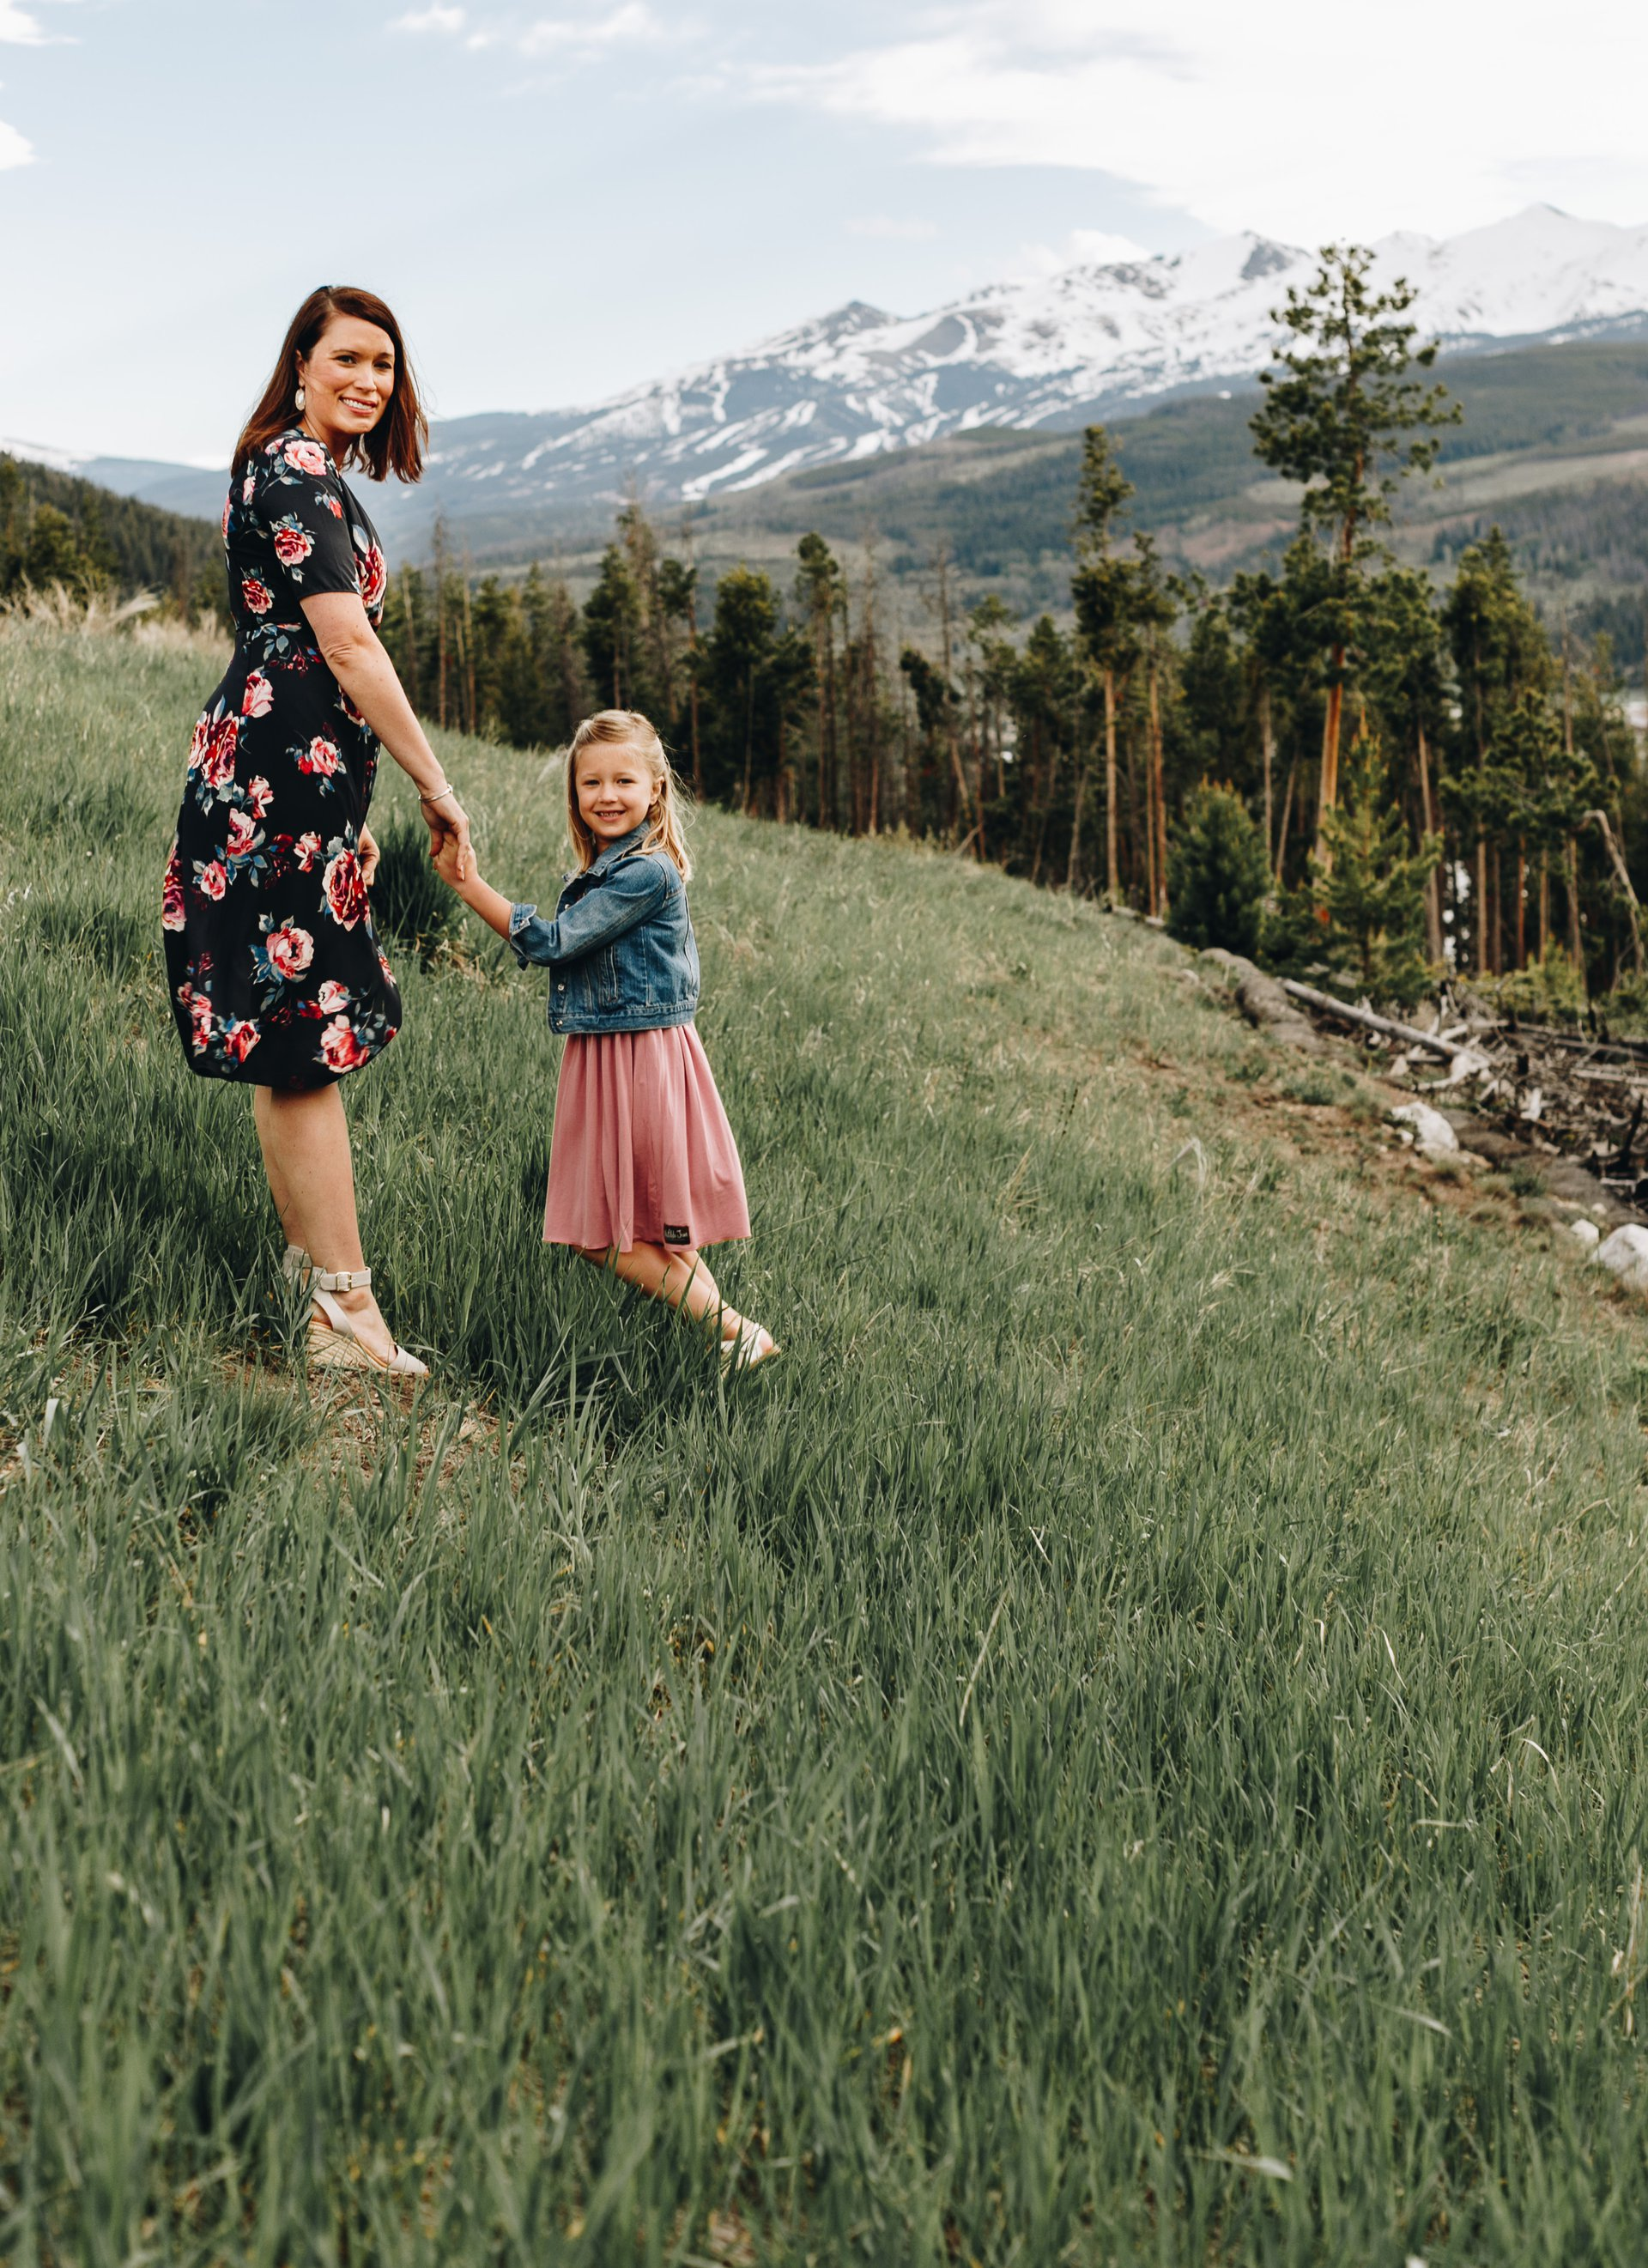 Breckenridge-United States-travel-story-Flytographer-8